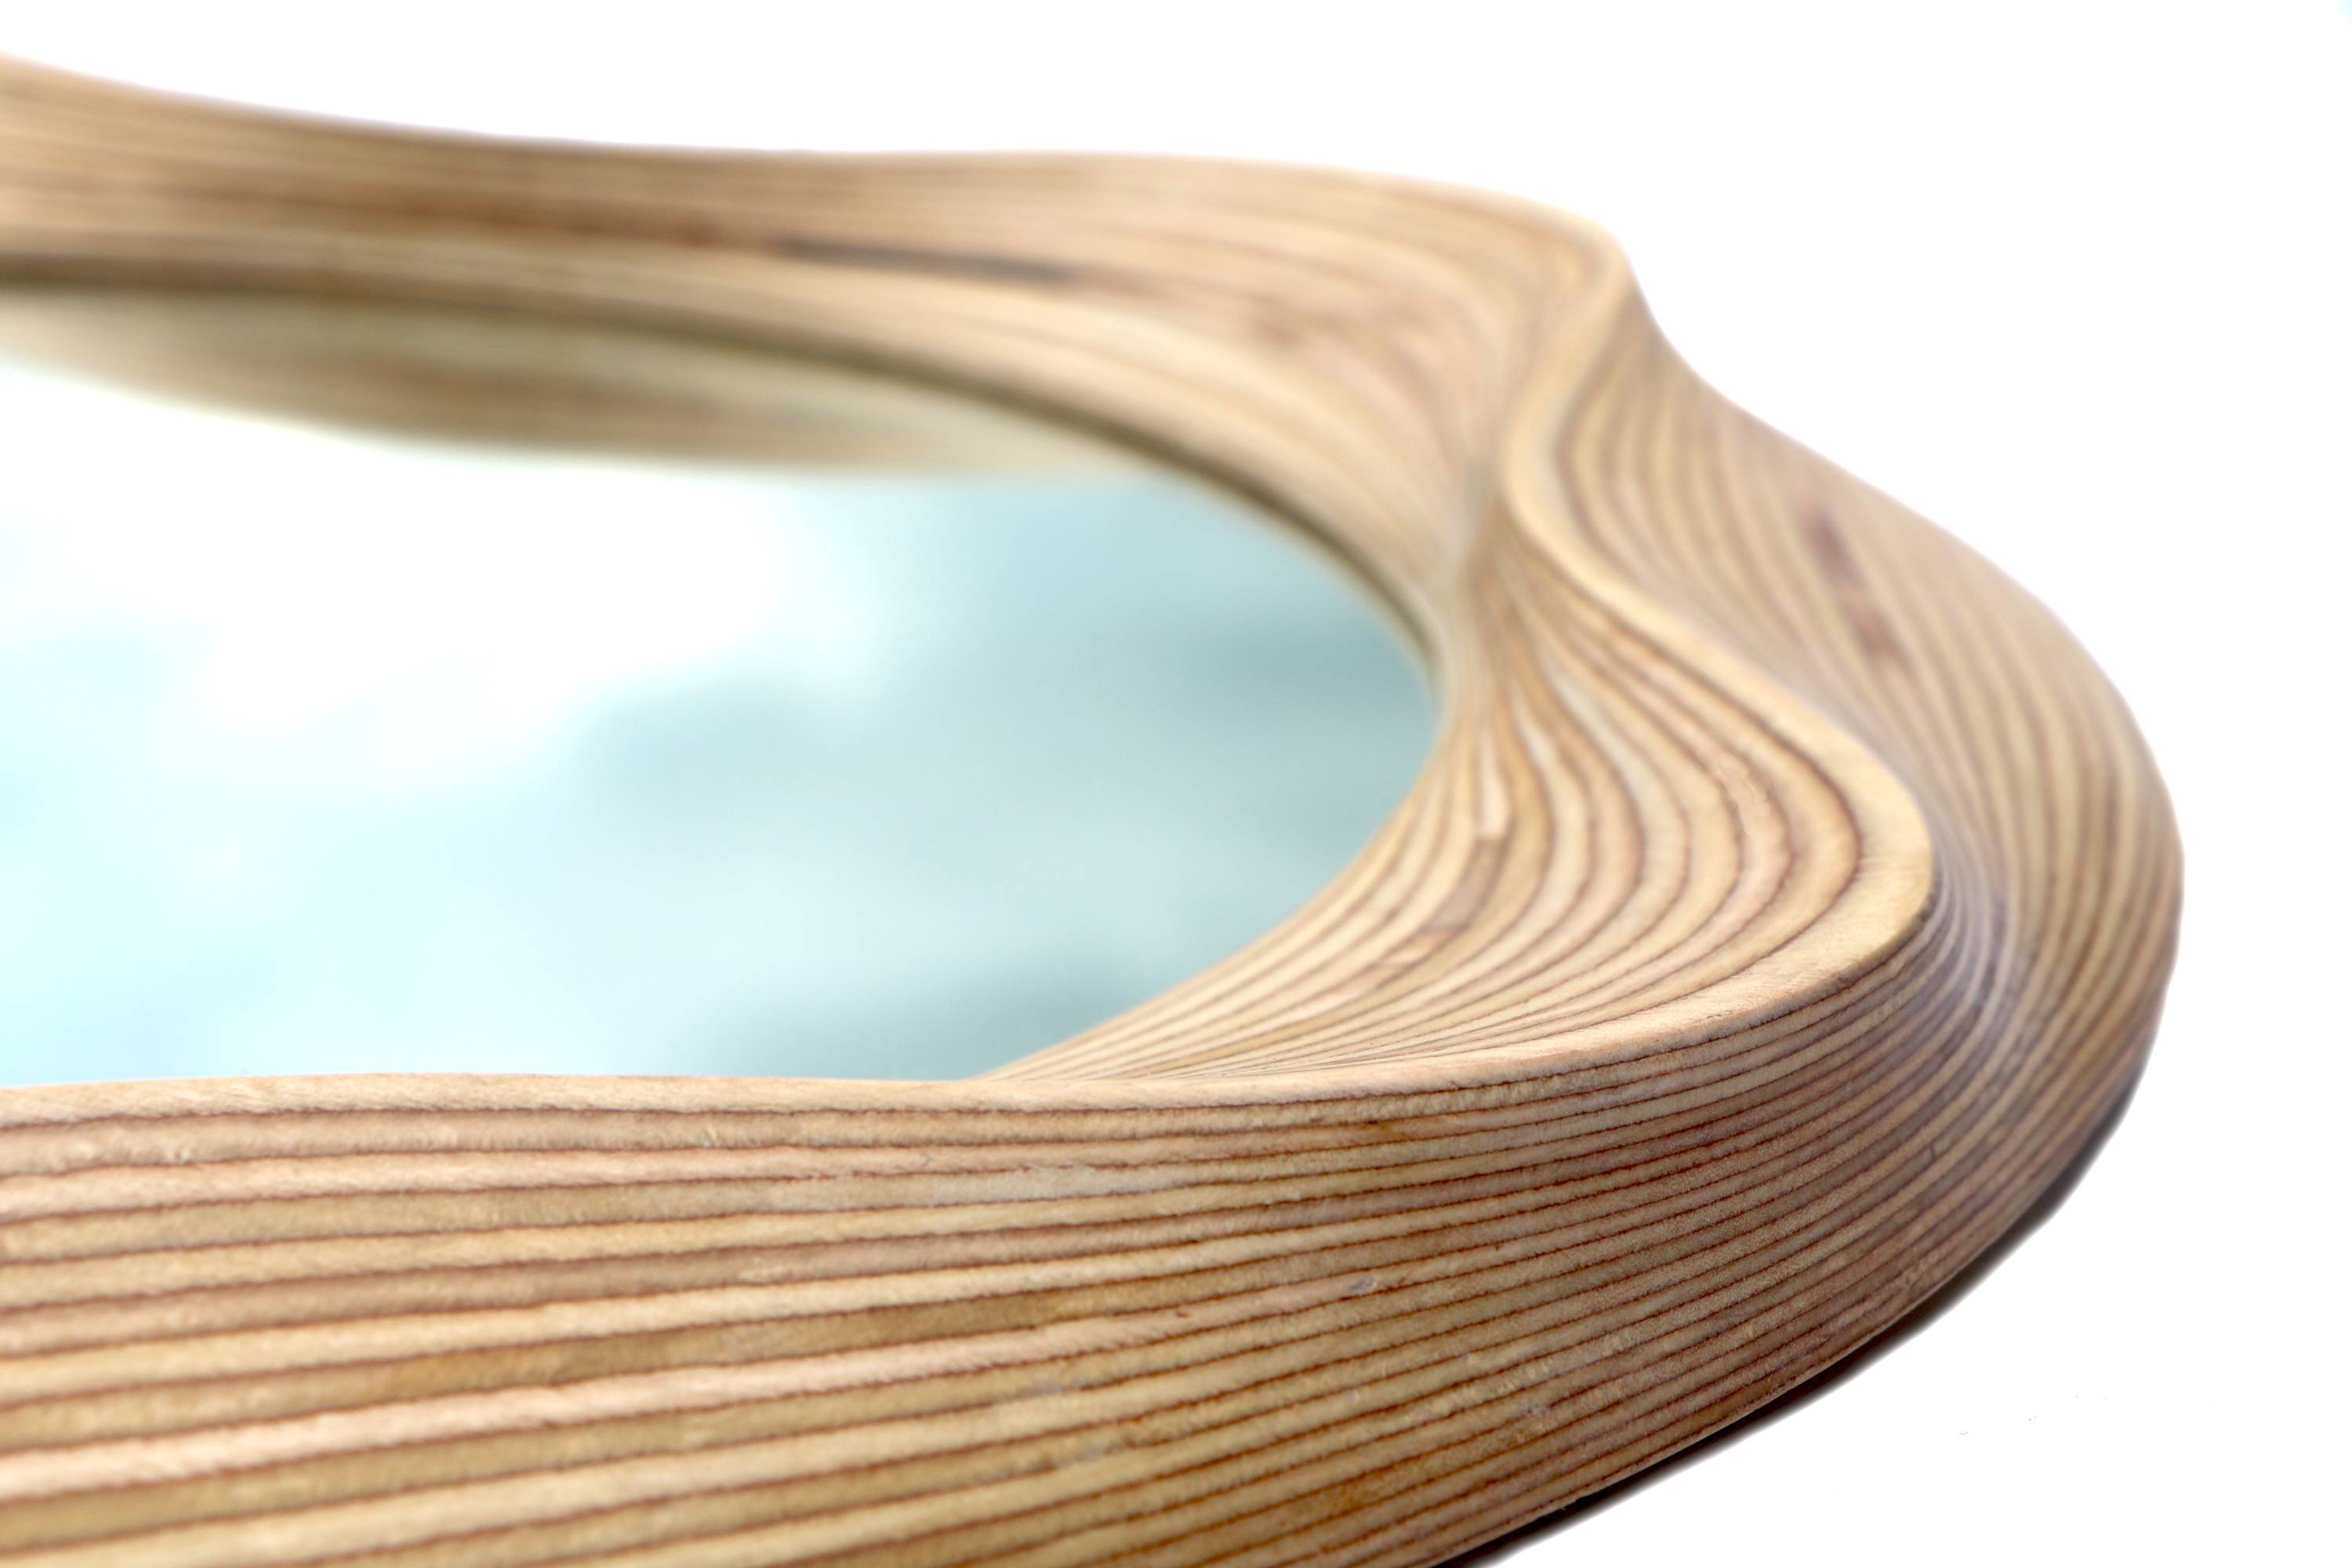 Surreywoodsmiths - Sculpture For Use - Art People Gallery throughout Unusual Round Mirrors (Image 21 of 25)